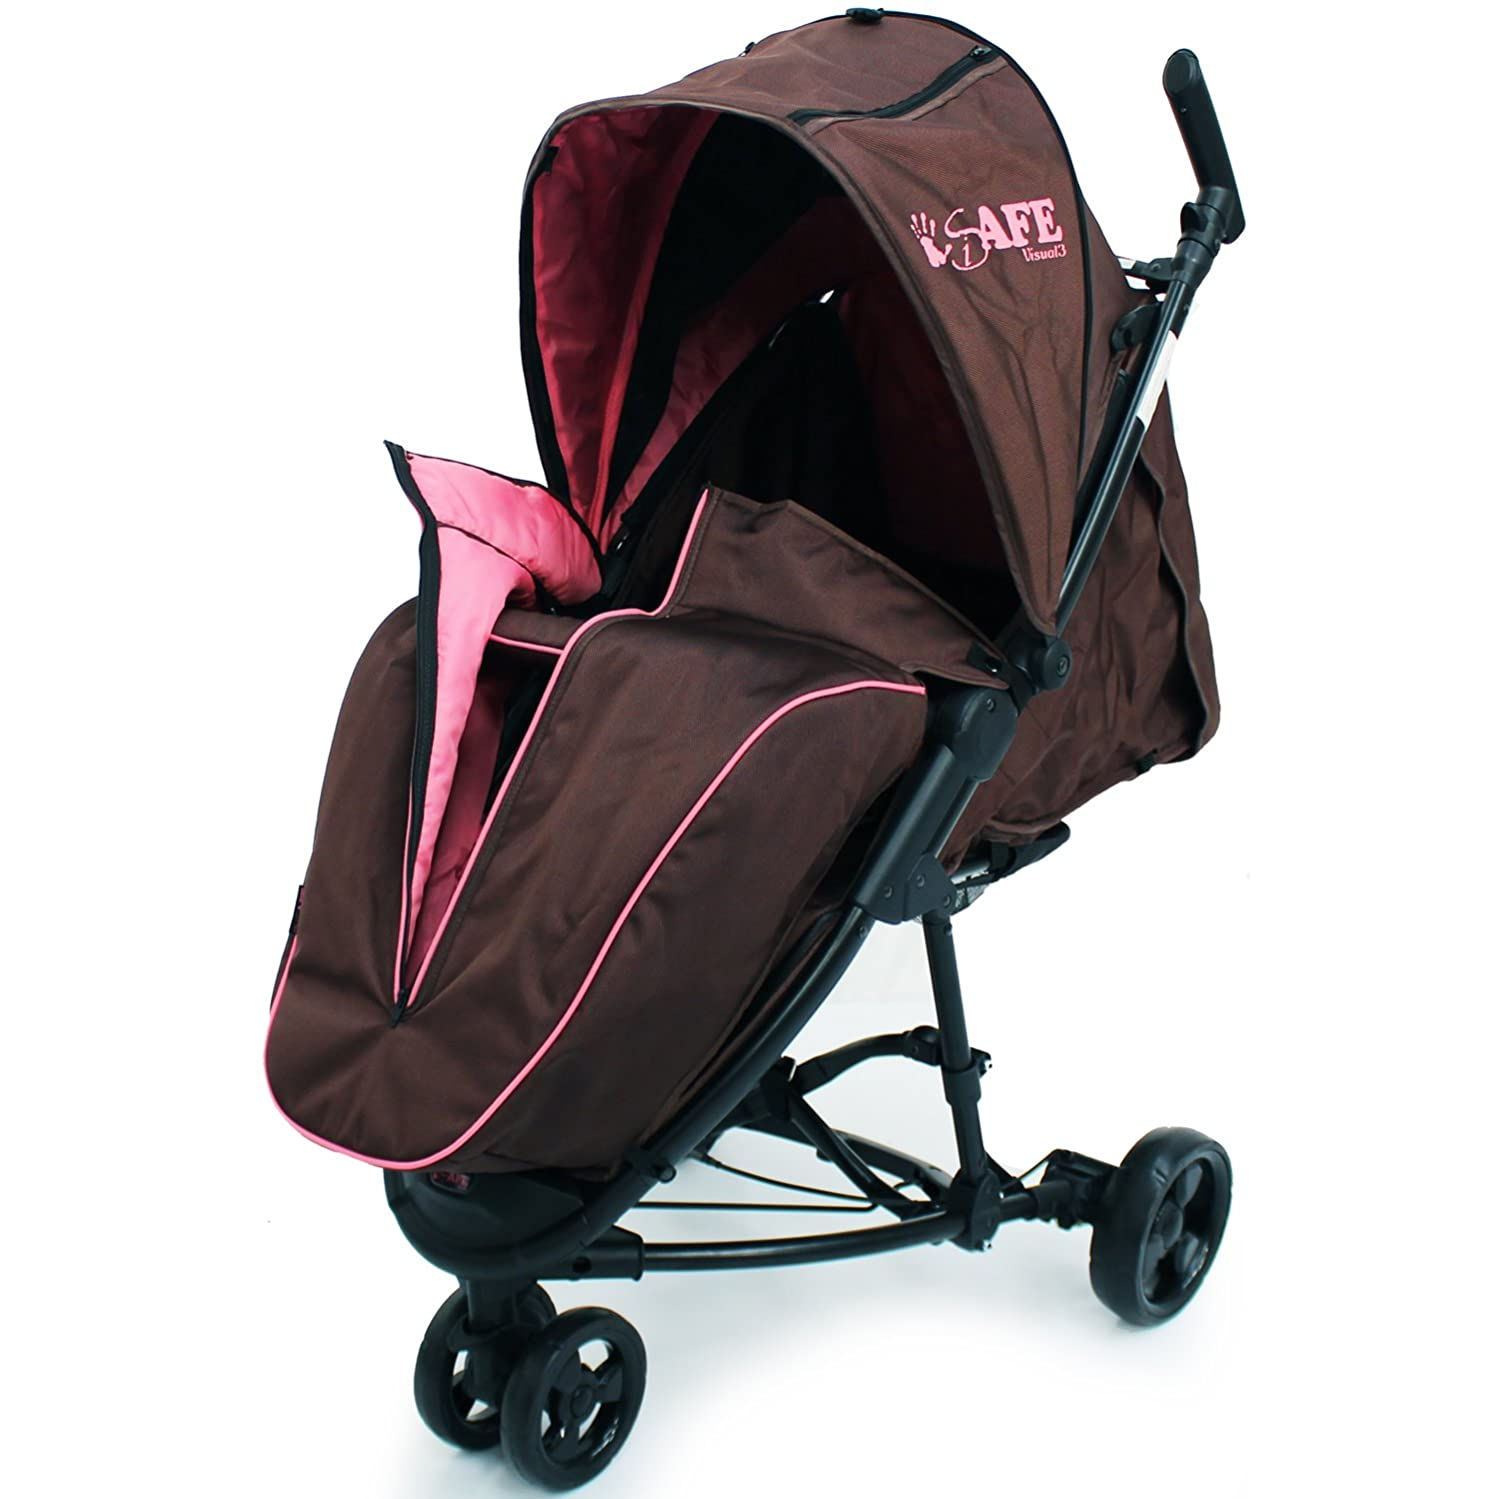 iSafe Visual 3 Raspberry Cake Three Wheeler Stroller from Birth with Tablet Smart Phone Media Pocket T5-HZFM-Q0FE